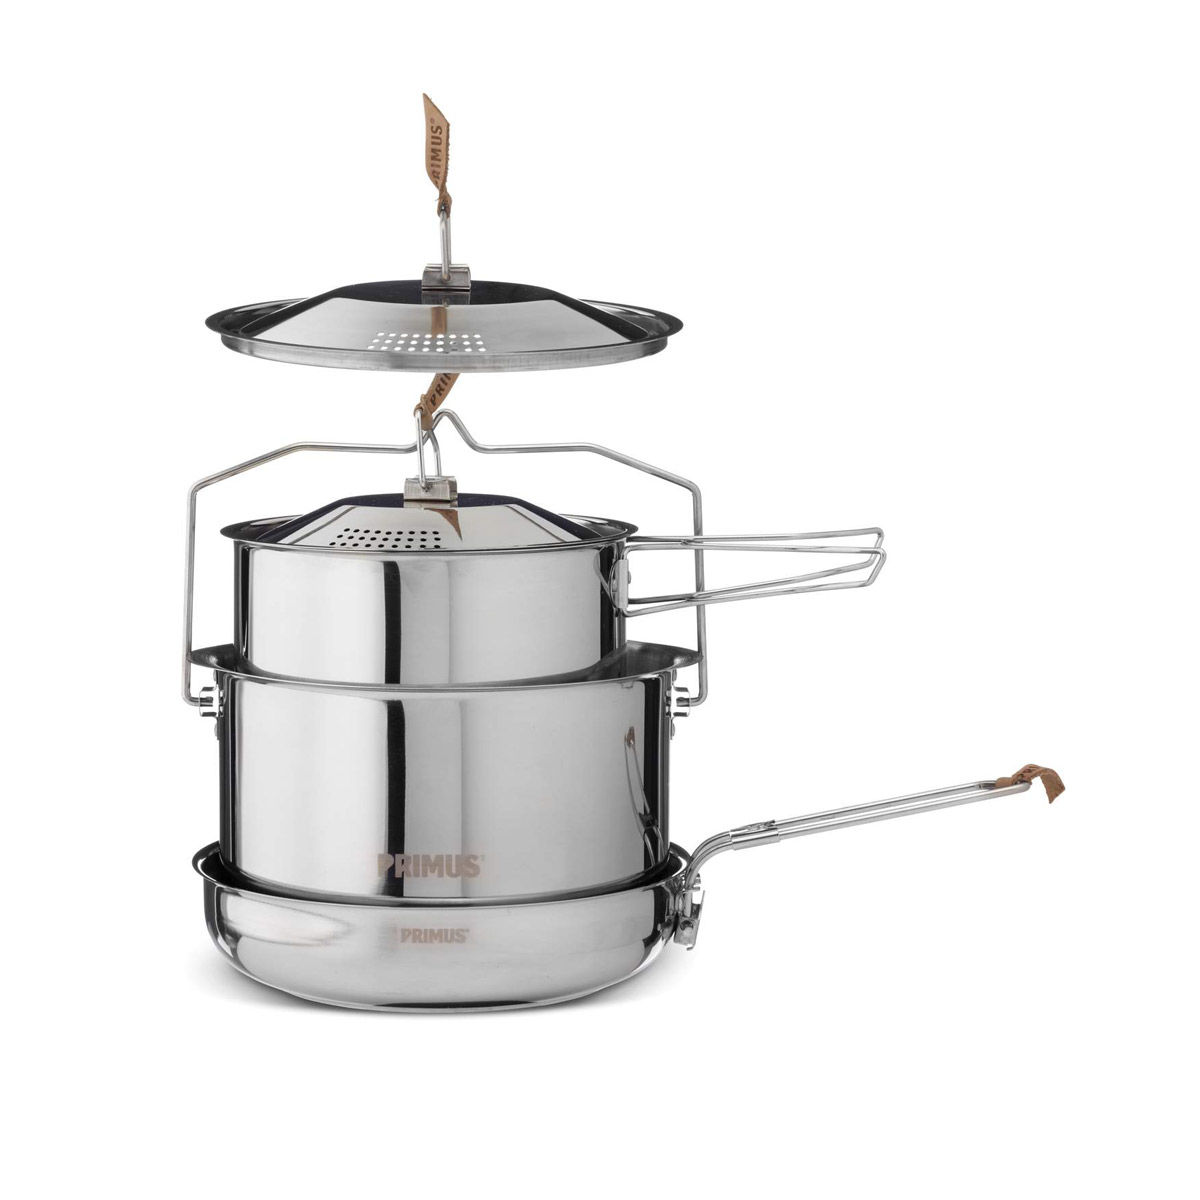 Primus CampFire Cookset S/S - Large